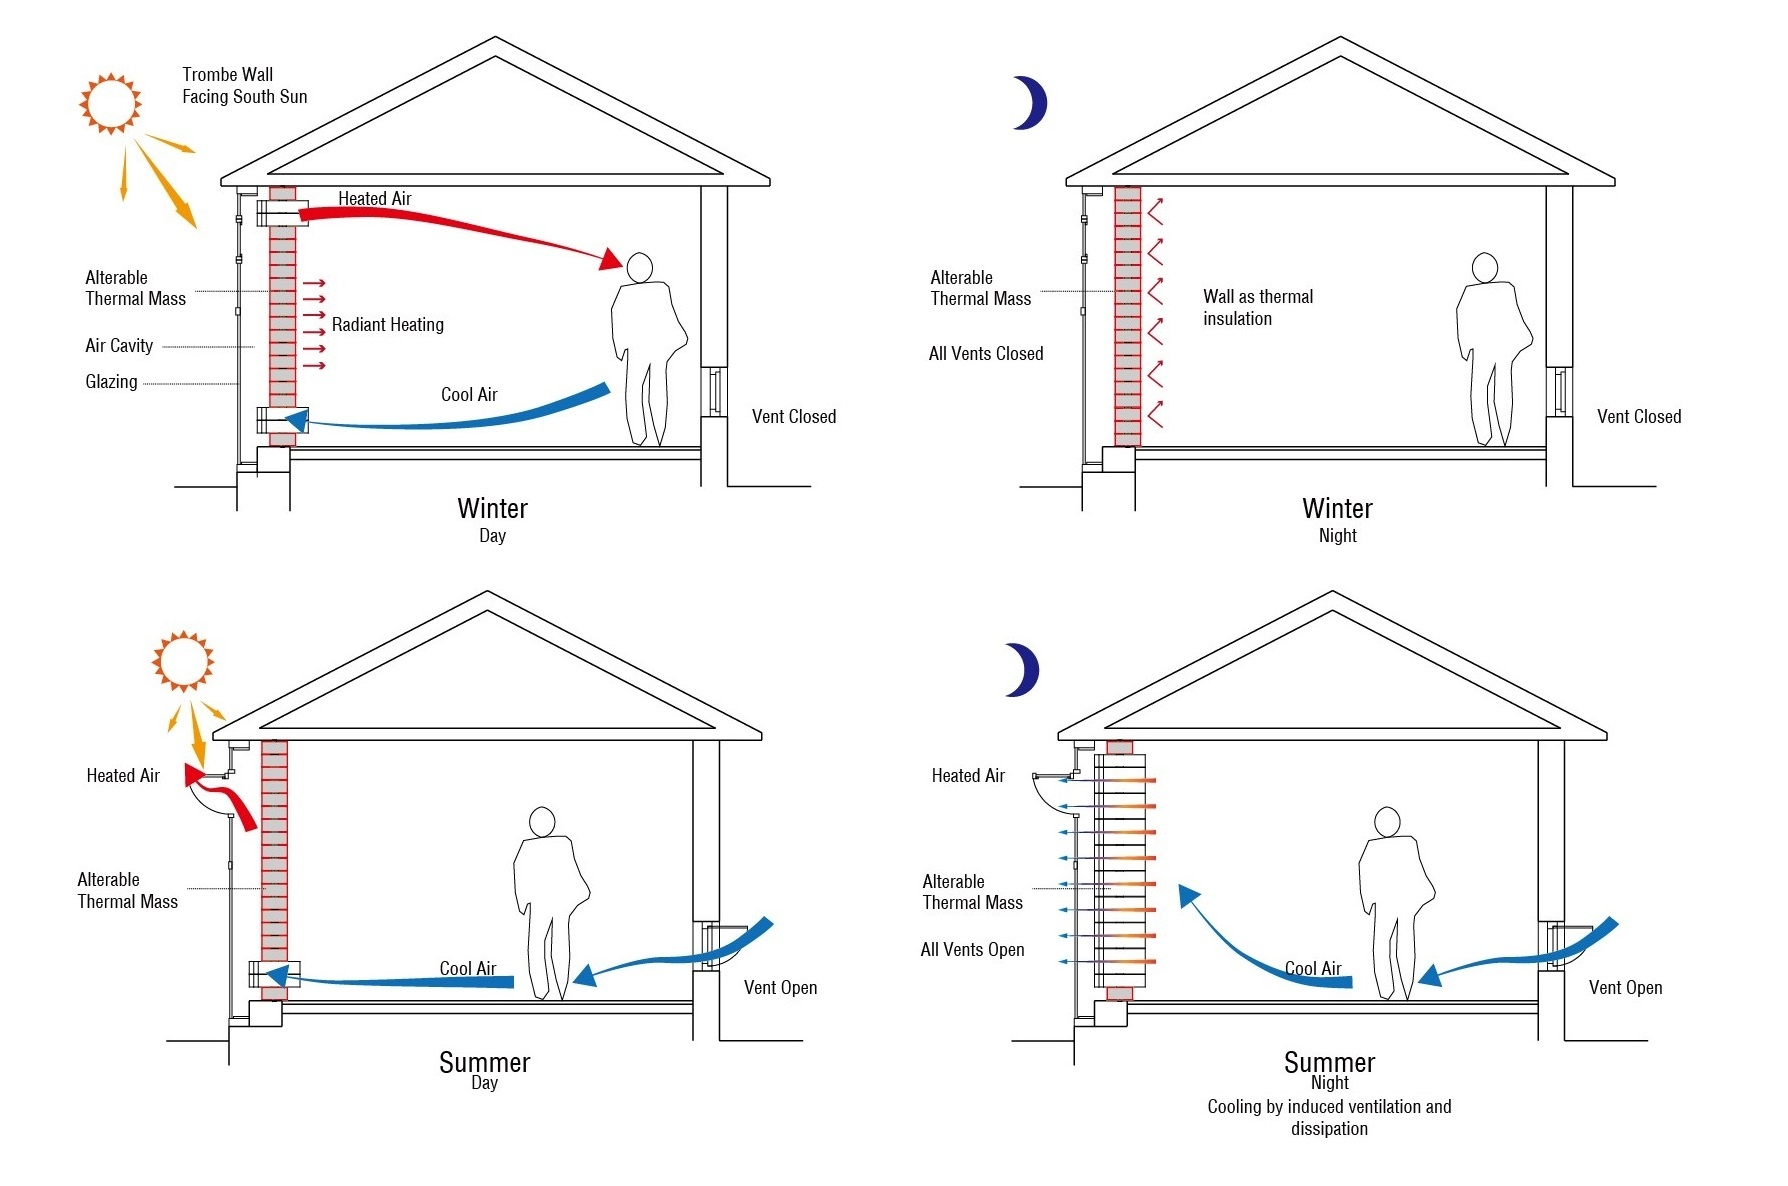 alterable-trombe-wall-heating-cooling-diagram2.jpg